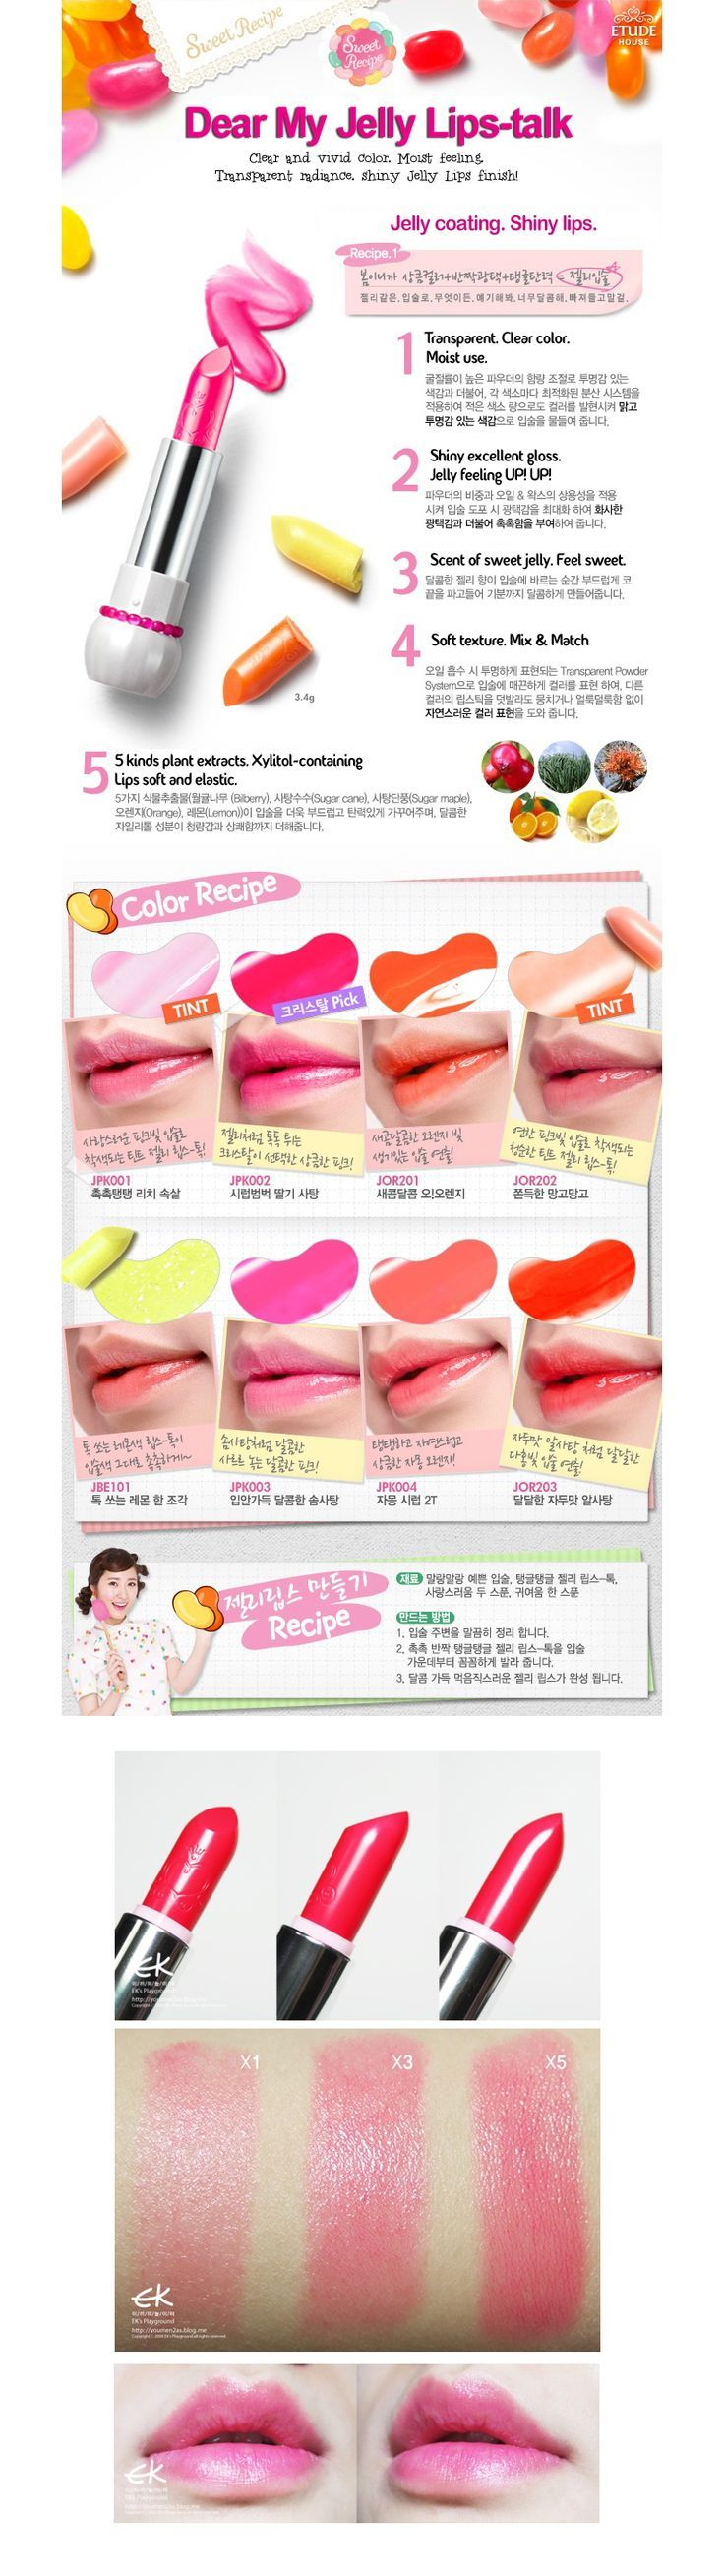 30 Best May 2016 Images On Pinterest Beauty Make Up And New Tony Moly Delight Tint Mini 15g Travel Size 02 Apple Red Etude House Sweet Recipe Dear My Jelly Lips Talk Transparent Powder System